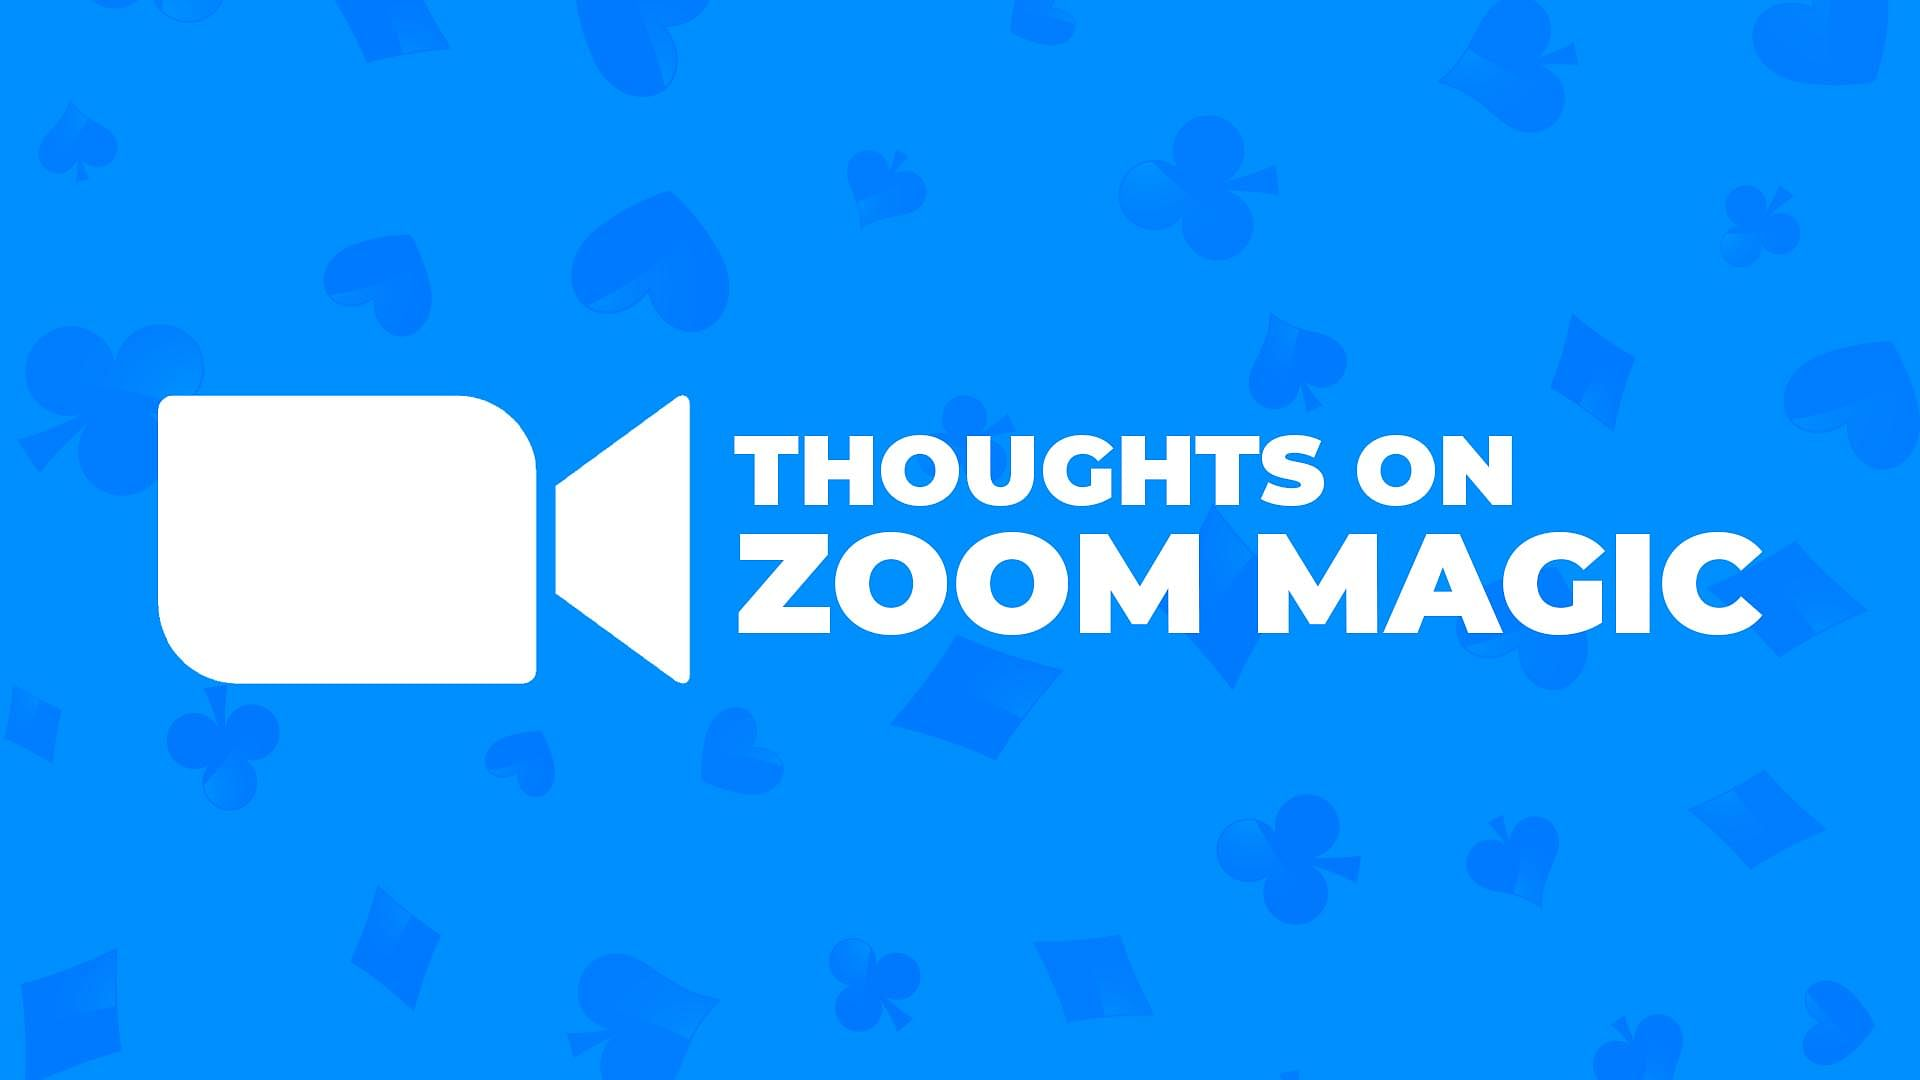 Thoughts on zoom magic and the future of virtual events